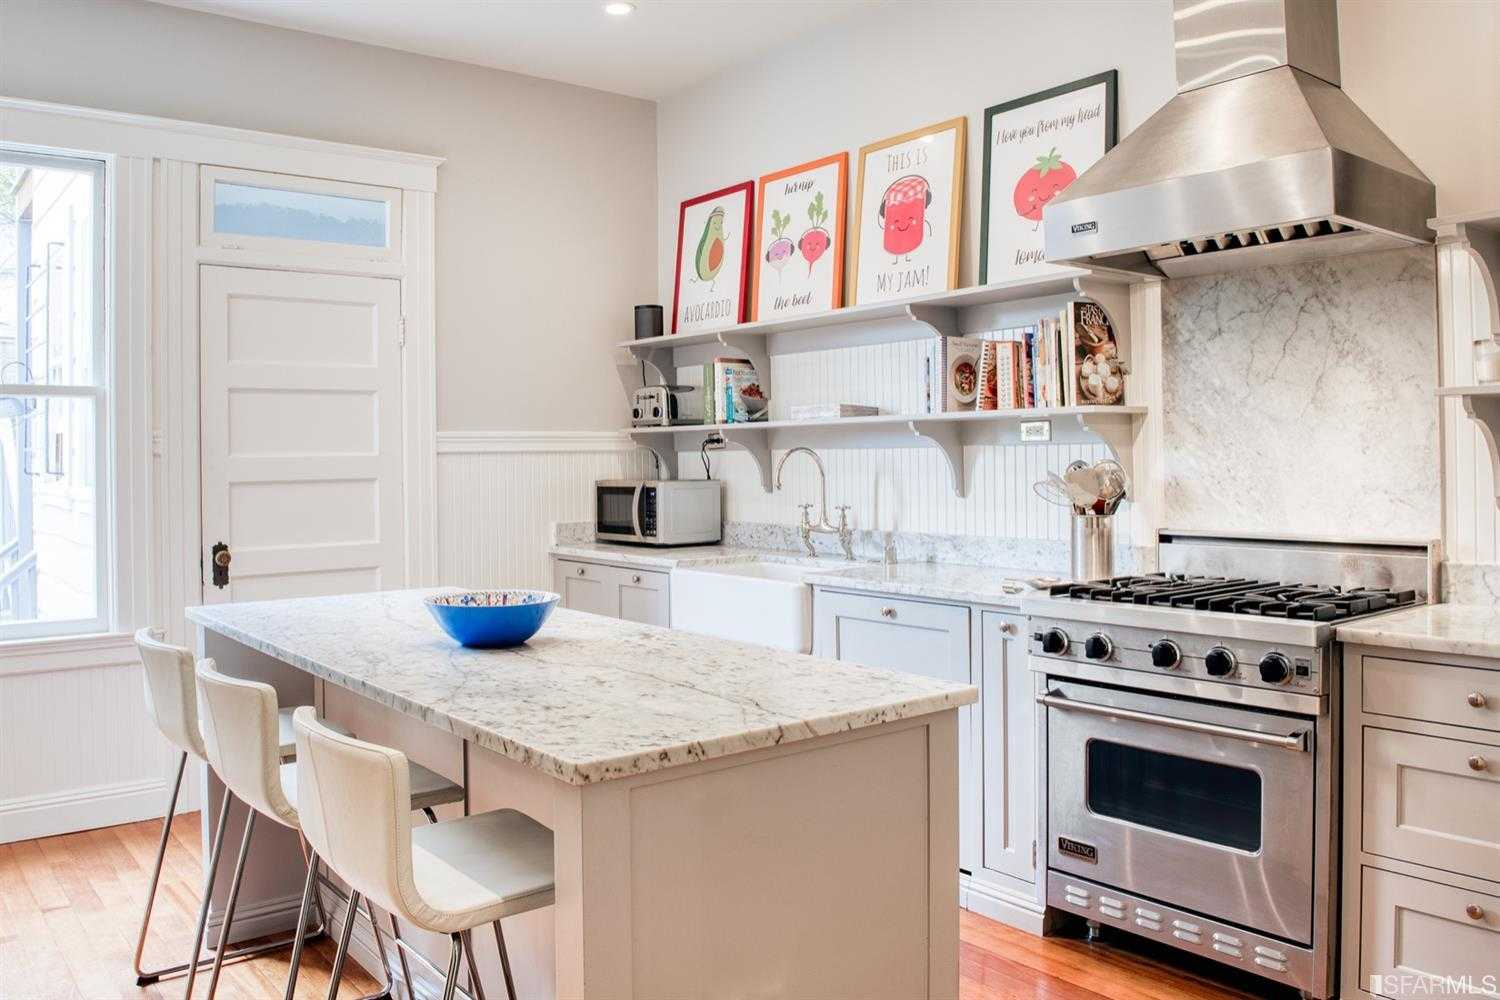 $1,770,000 - 3Br/2Ba -  for Sale in San Francisco